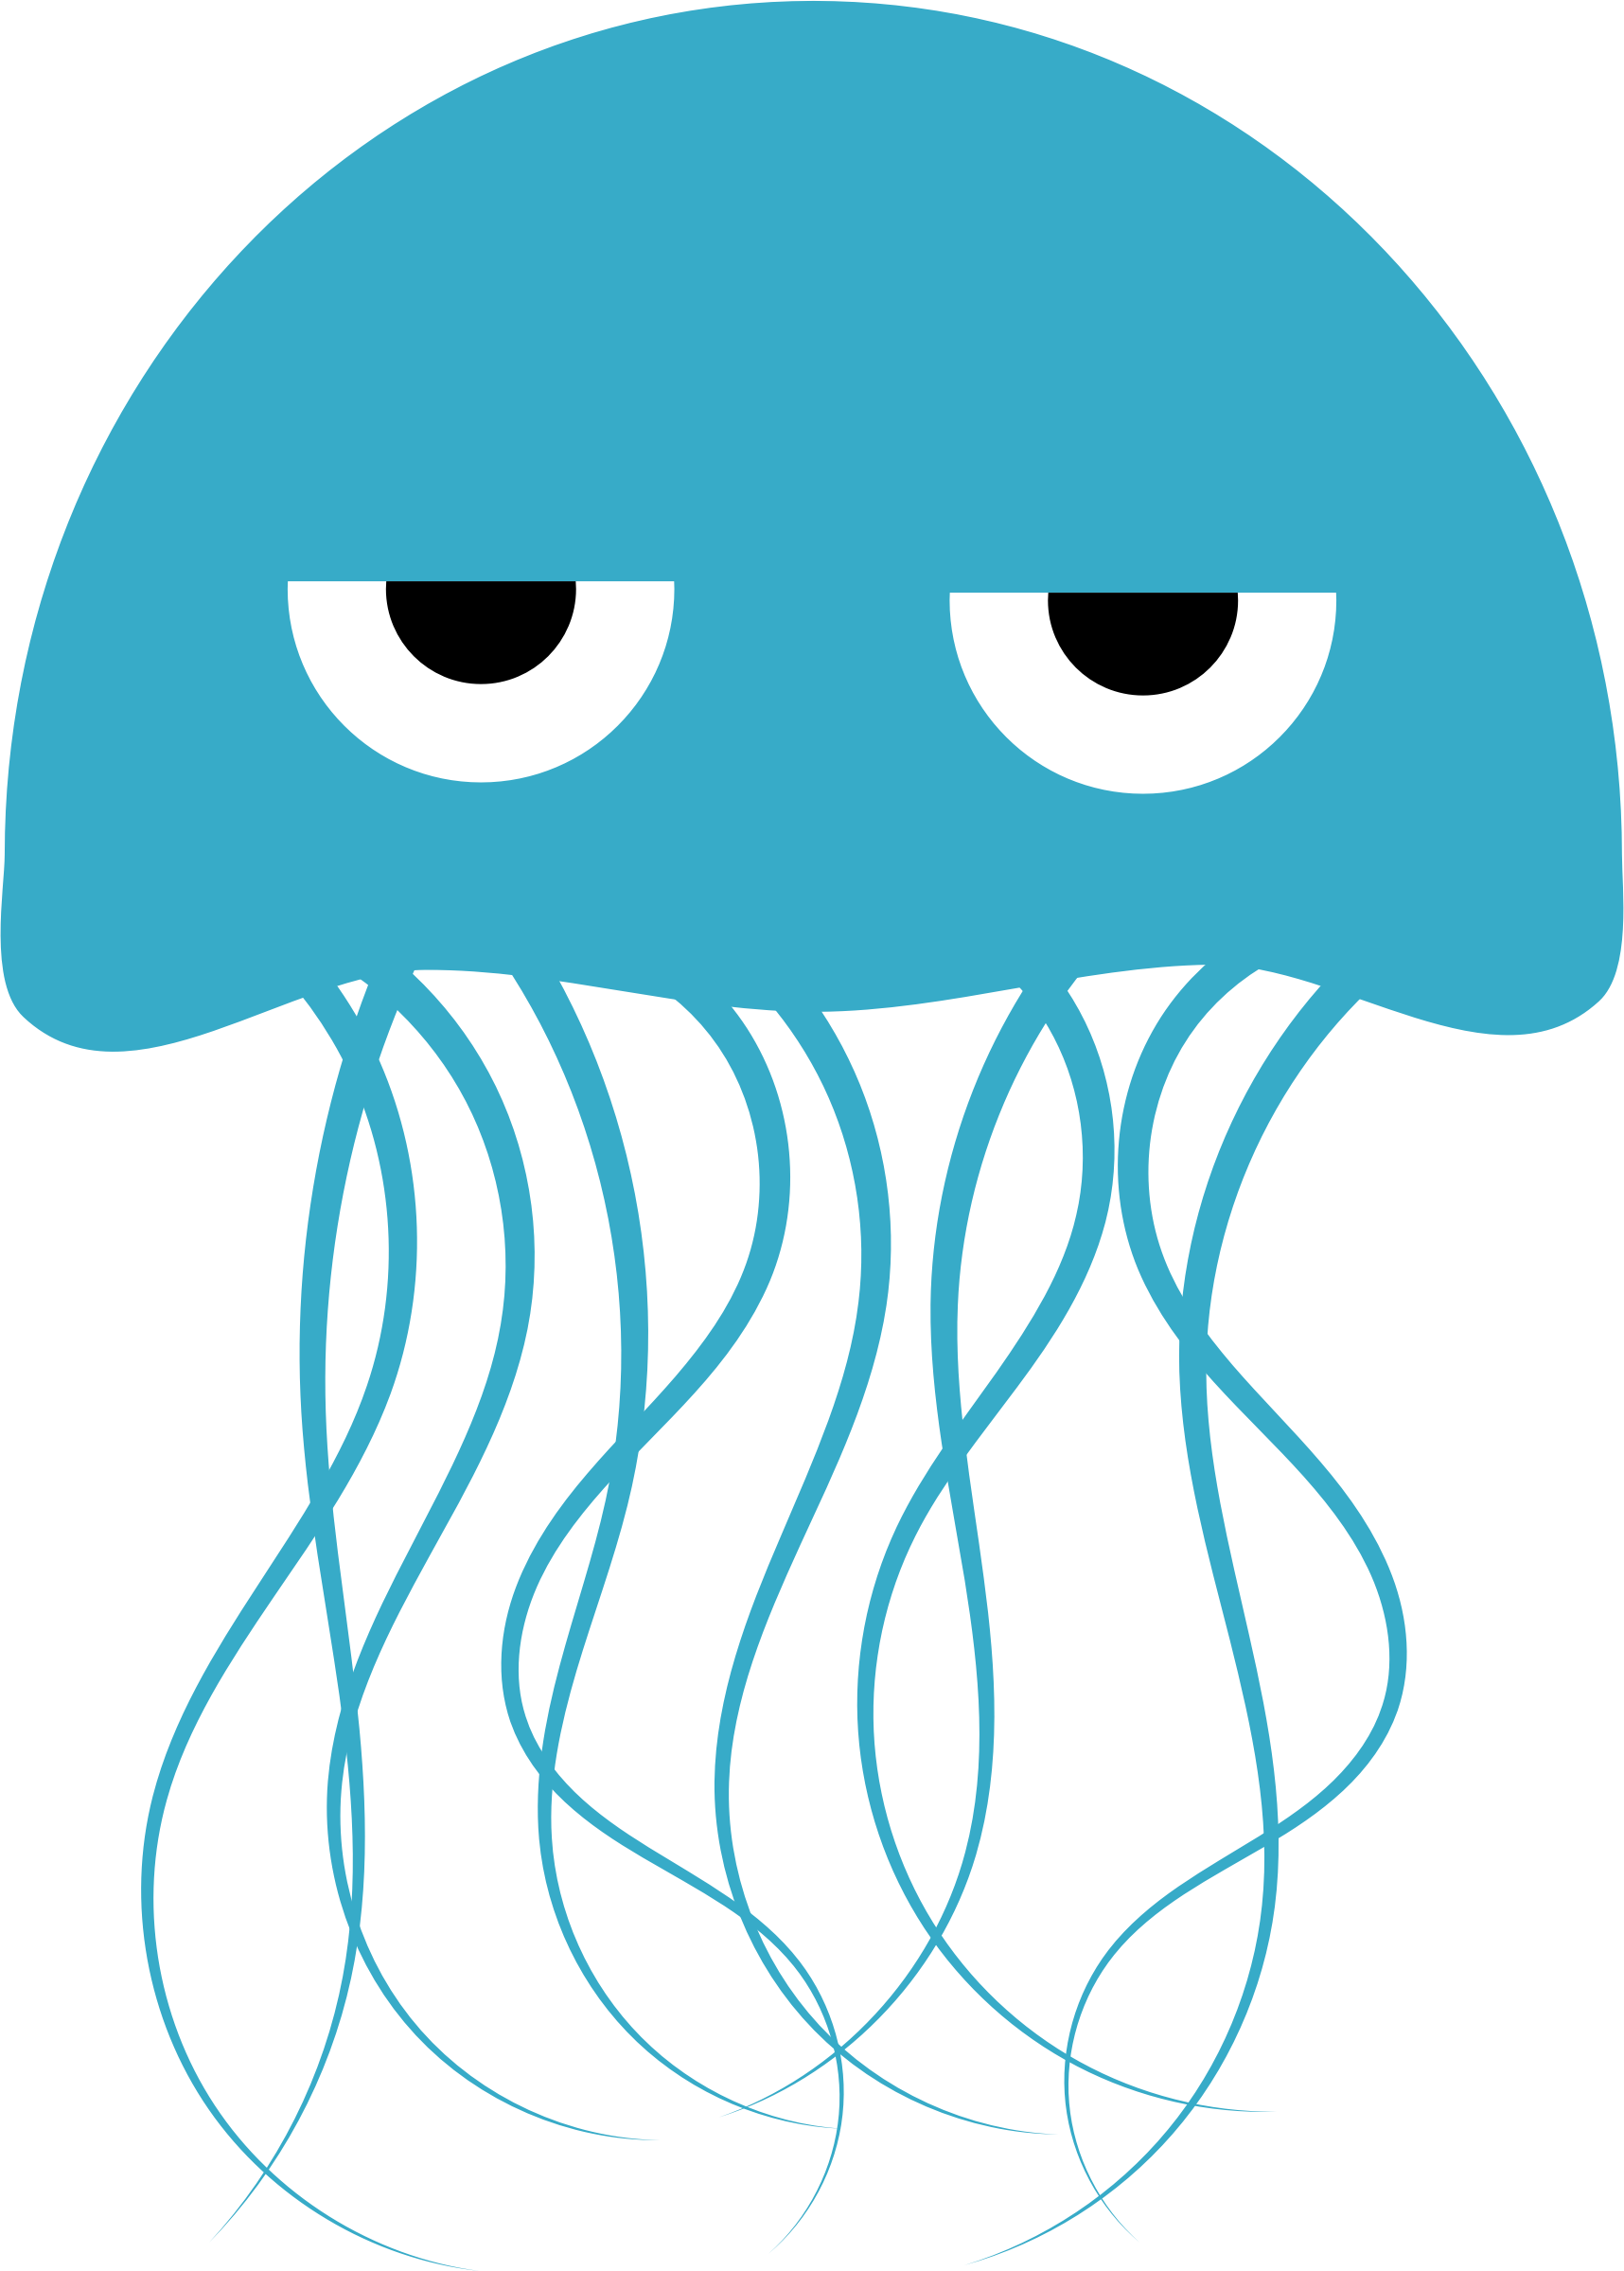 clip transparent library Jellyfish clipart. Transparent background free on.